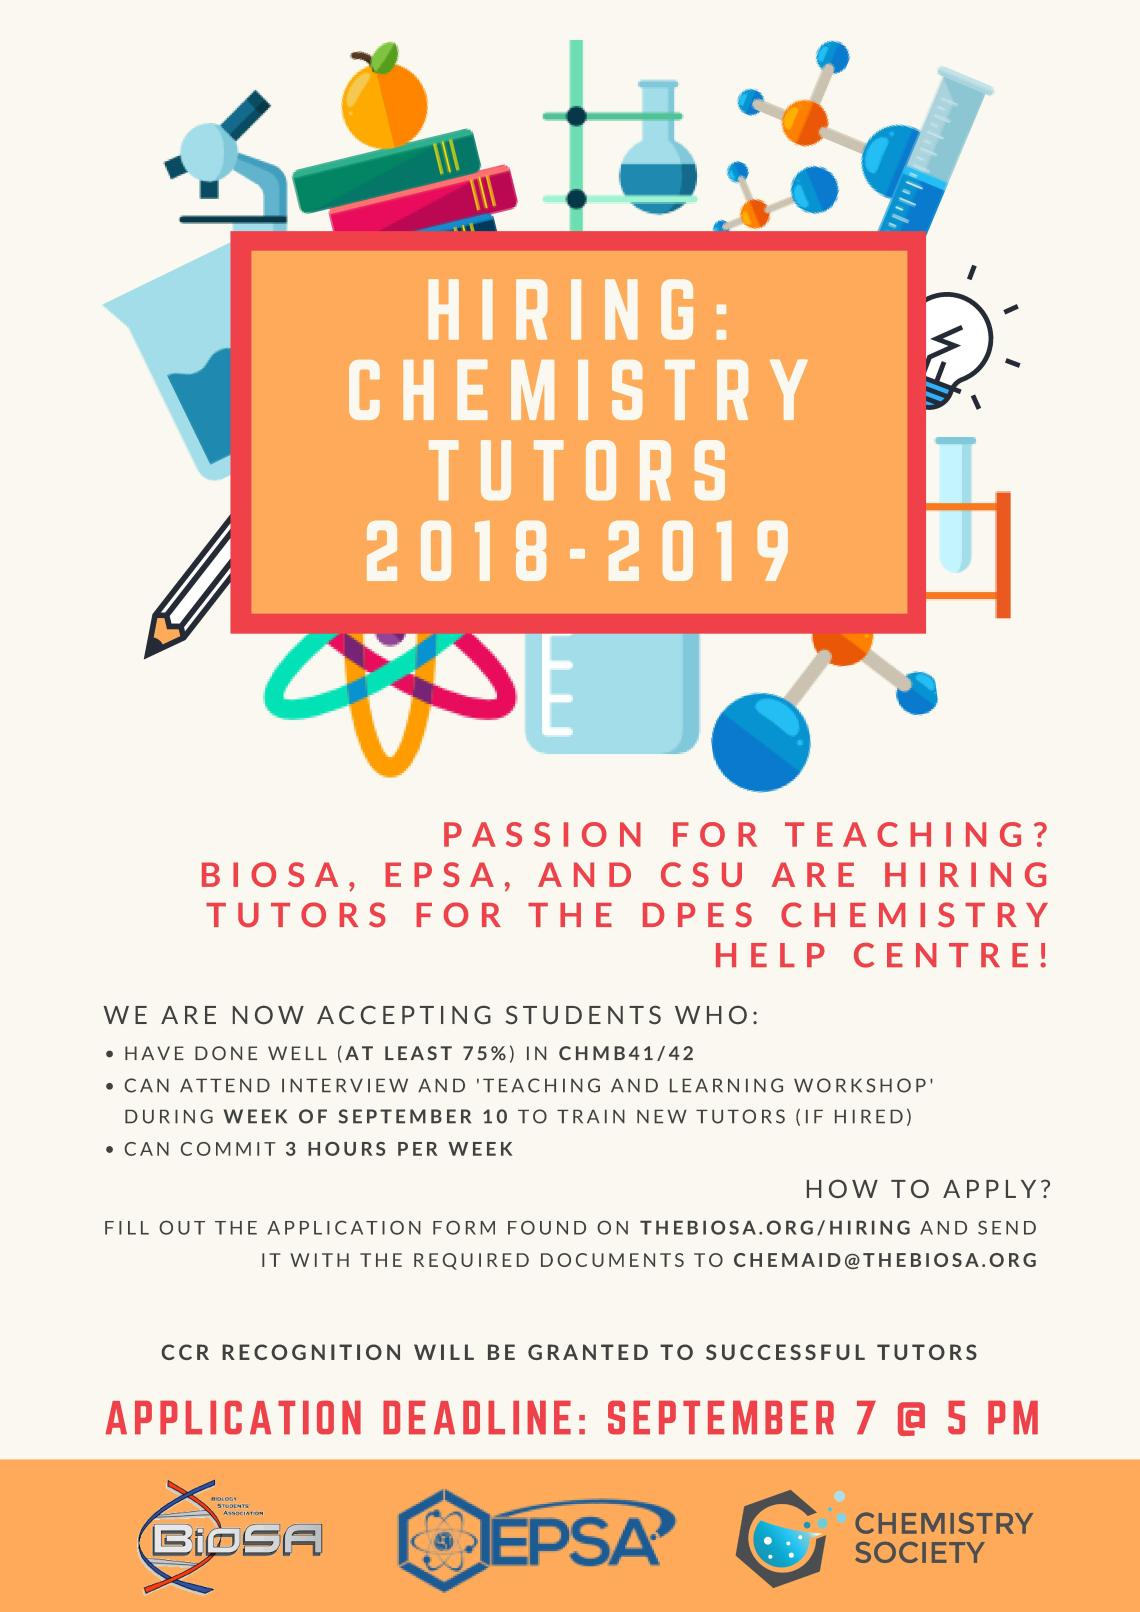 Chem Aid Tutor Hiring - FB and Poster